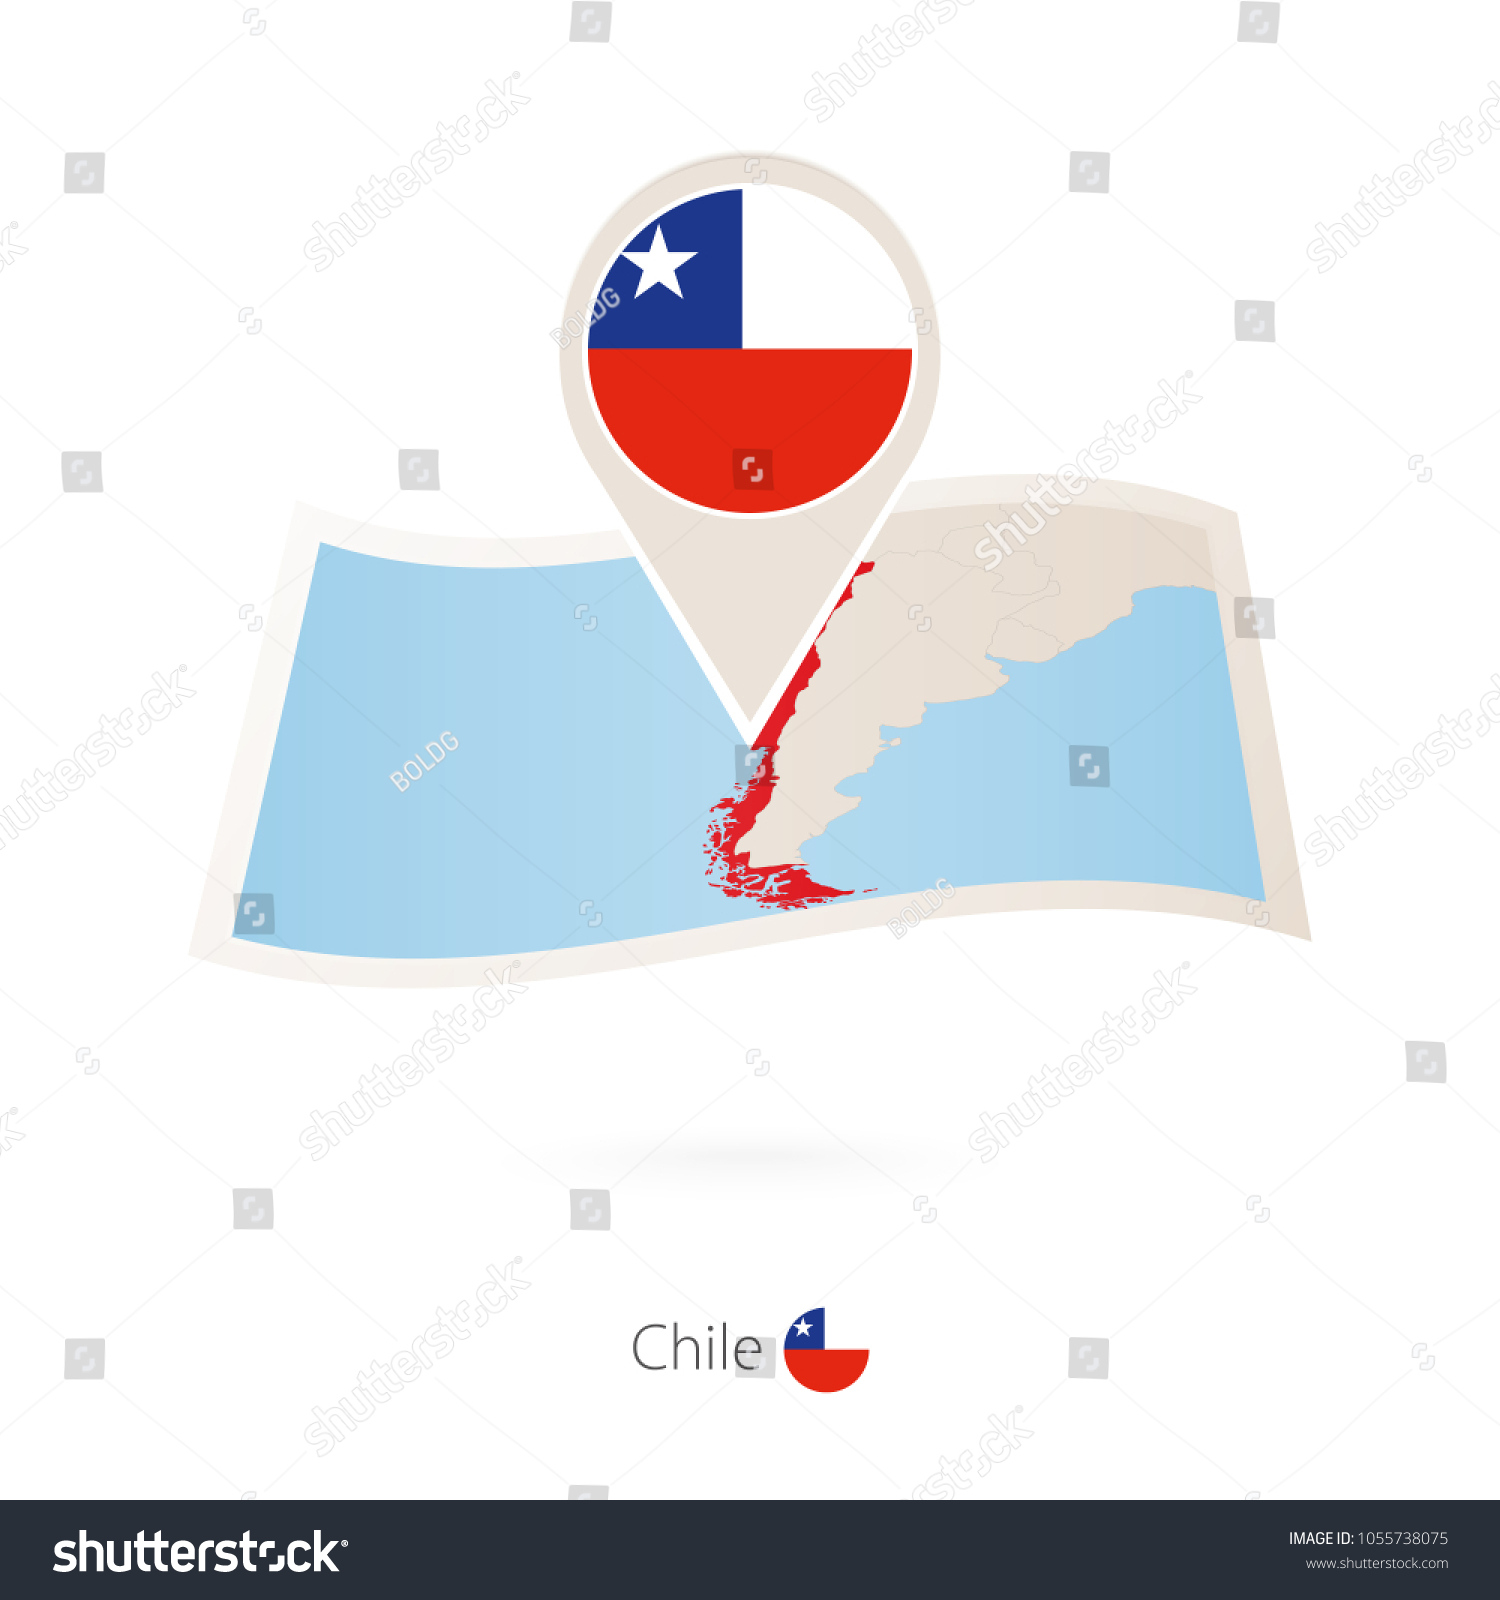 folded paper map chile flag pin stock vector 1055738075 shutterstock rh shutterstock com Properly Folded United States Flag Veterans Flag Folded